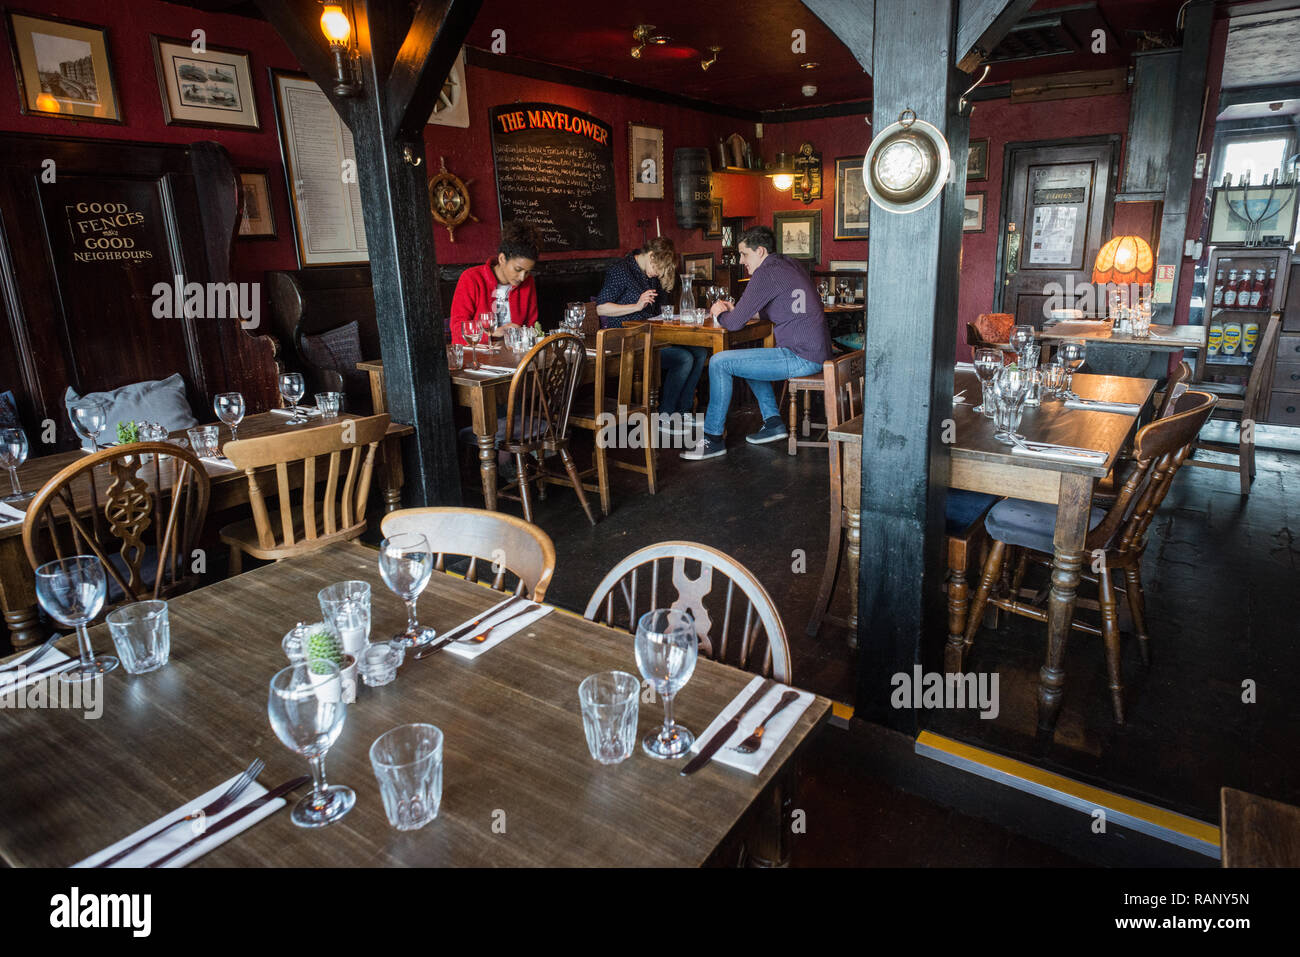 Innenansicht der Mayflower Pub, Rotherhithe, London Stockbild